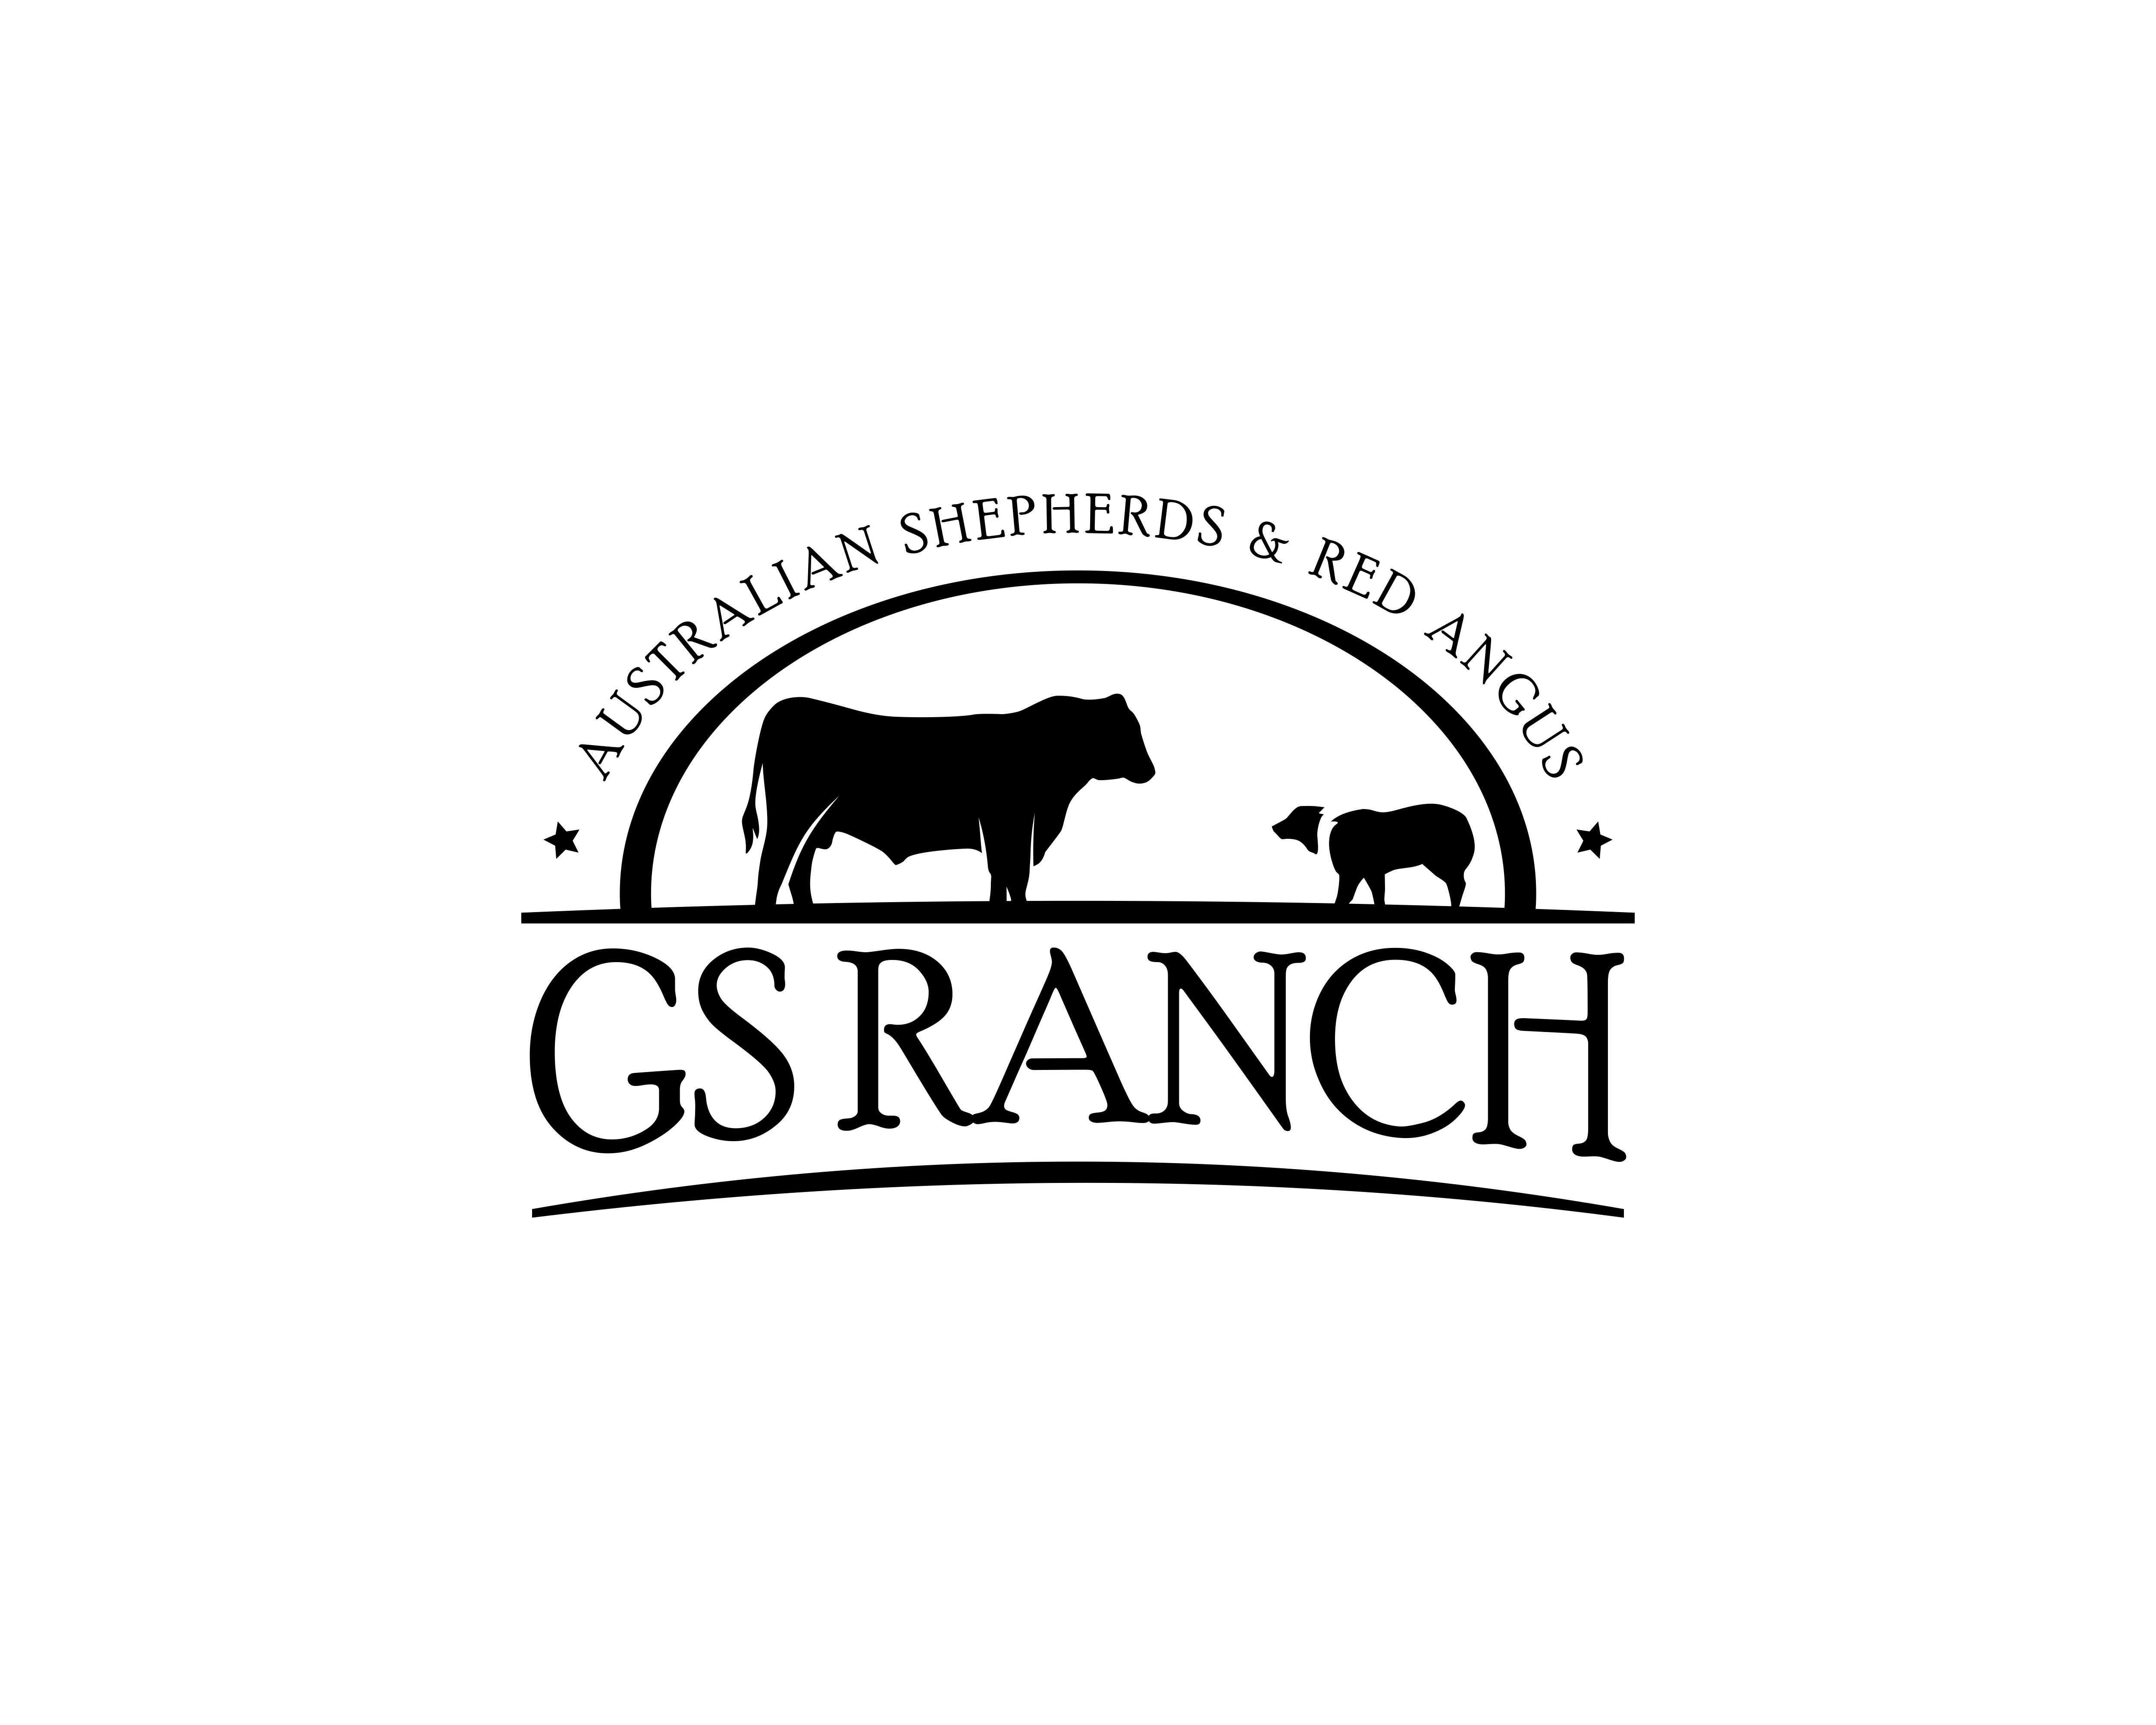 Help GS Ranch with a new logo